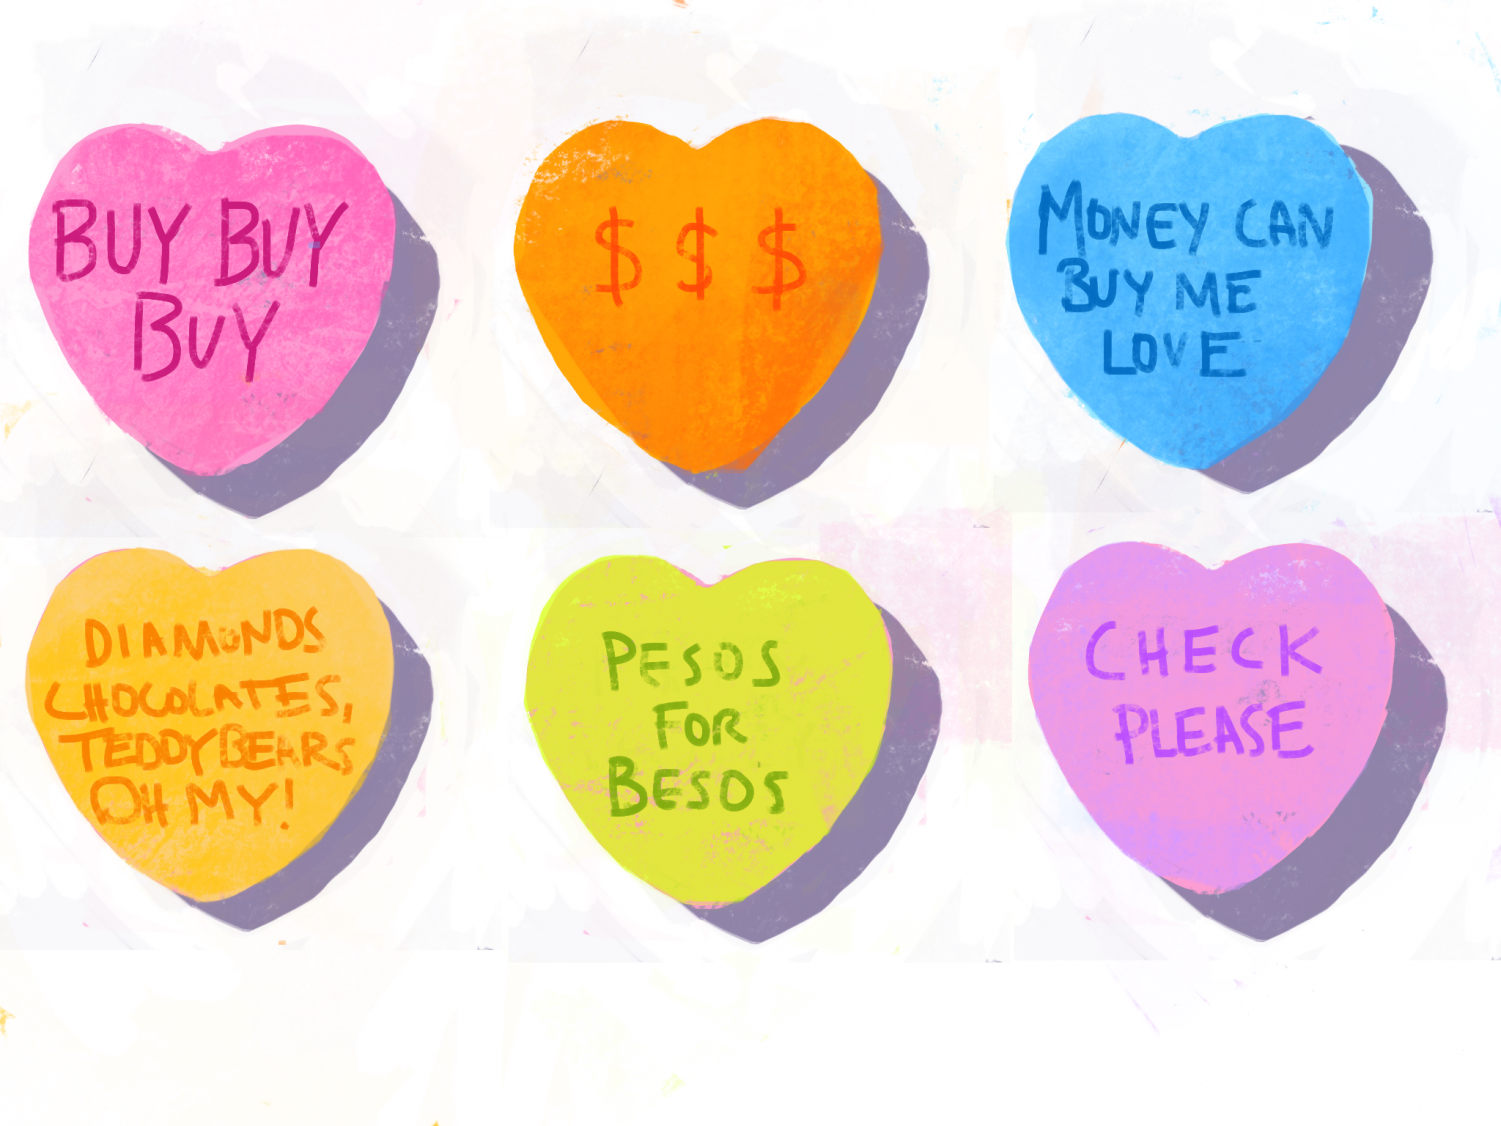 The expectation of spending big bucks on Valentine's Day emerged in the 1980s when the holiday took on its current capitalist form. Advertisements began pushing the idea of buying jewelry, chocolates and other presents for your valentine. Cartoon by Bella Russo